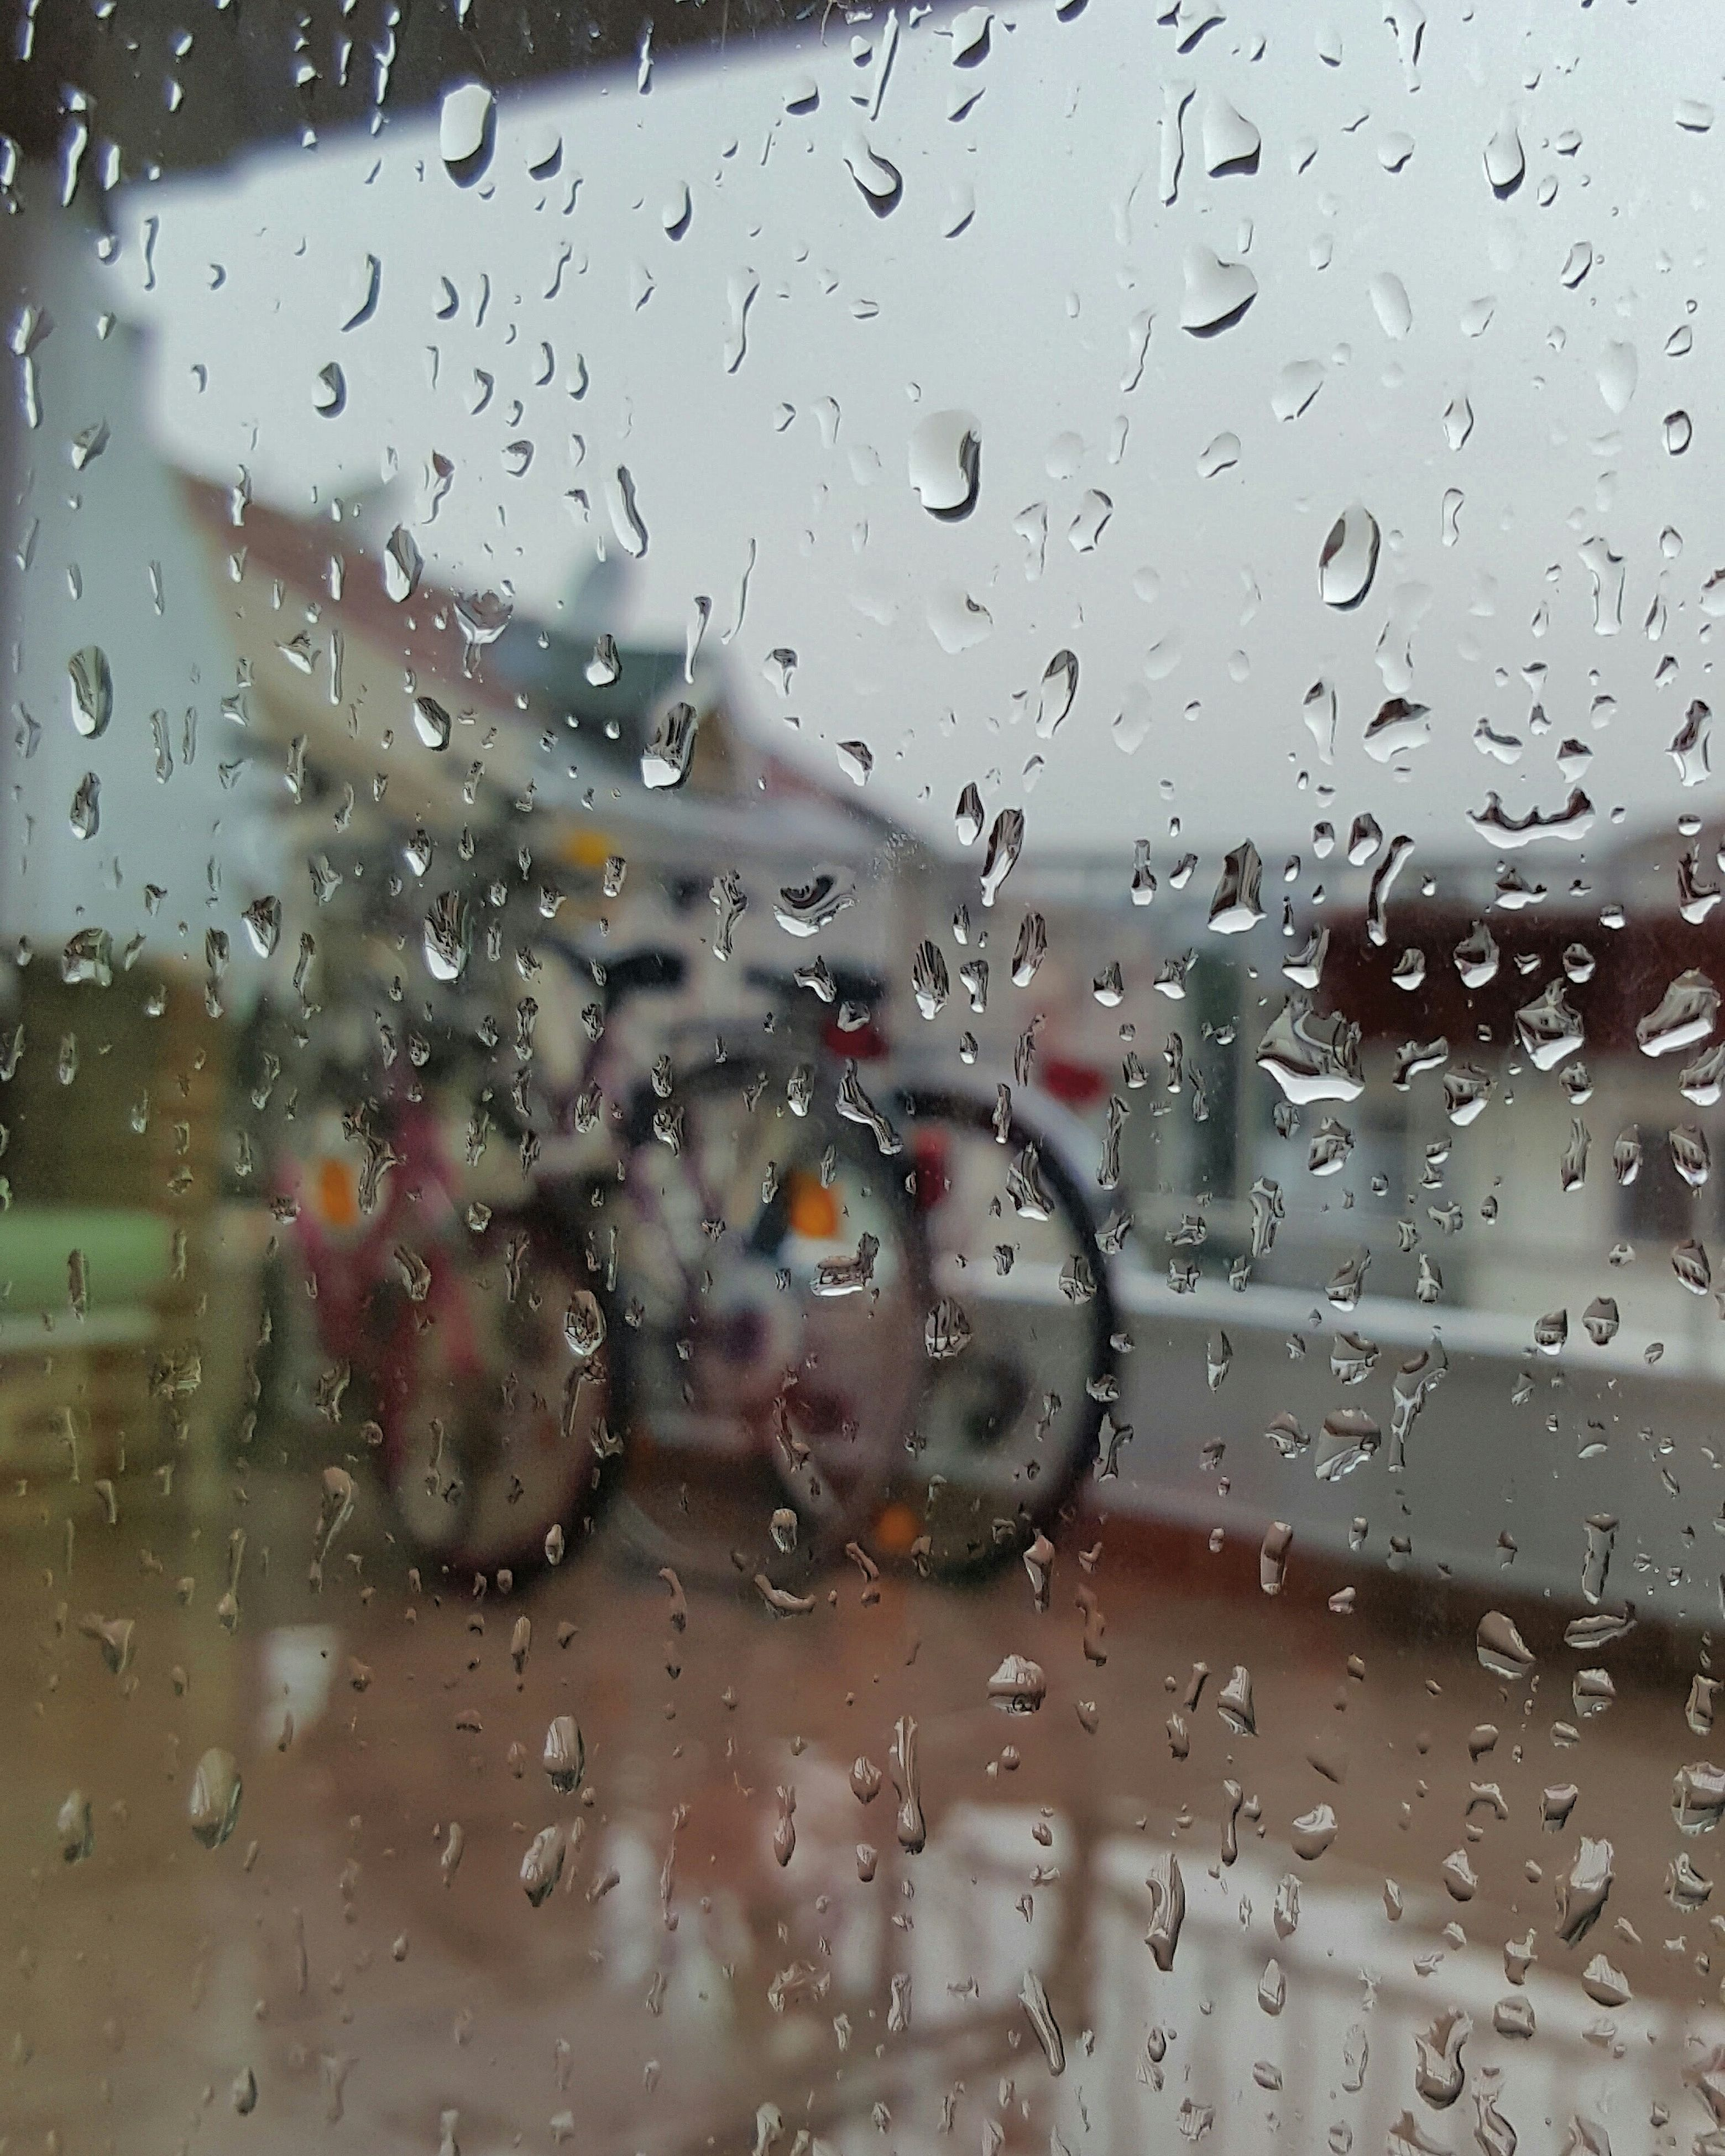 drop, wet, rain, window, transparent, season, water, weather, glass - material, indoors, raindrop, transportation, car, monsoon, land vehicle, mode of transport, focus on foreground, vehicle interior, glass, built structure